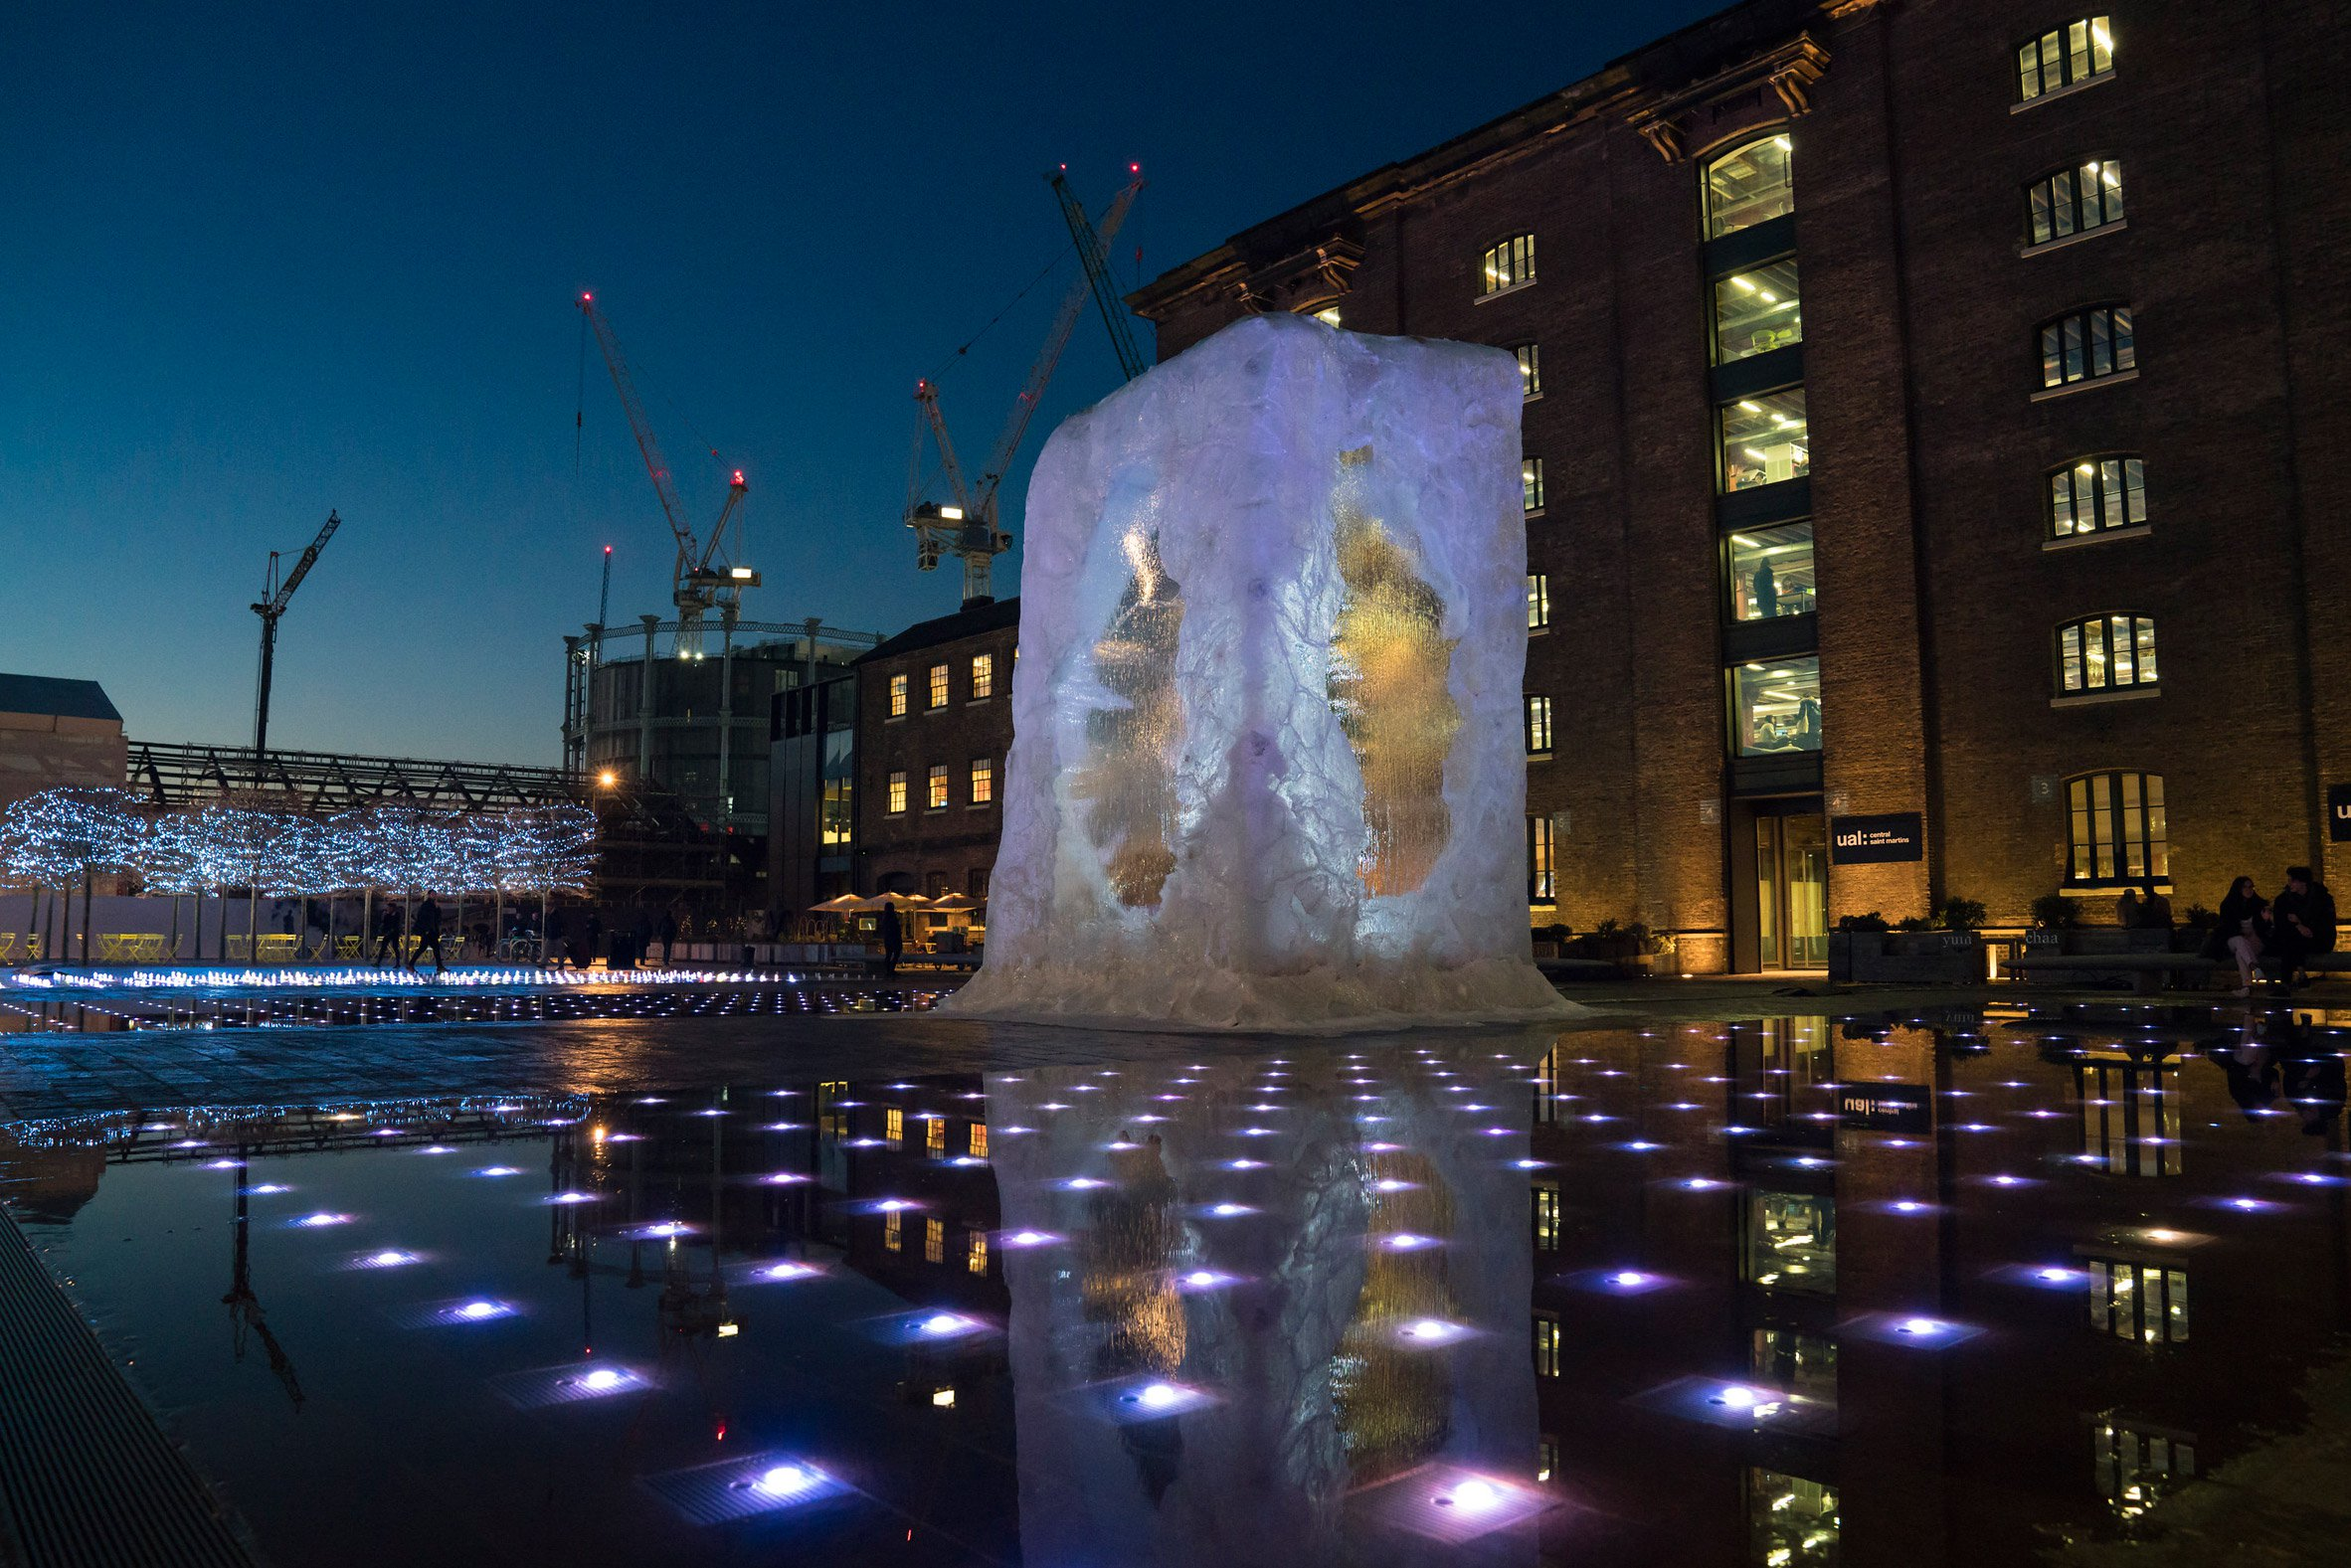 alex-chinneck-christmas-tree-kings-cross-deisgn-installation-st-martins-london-uk_dezeen_2364_col_1